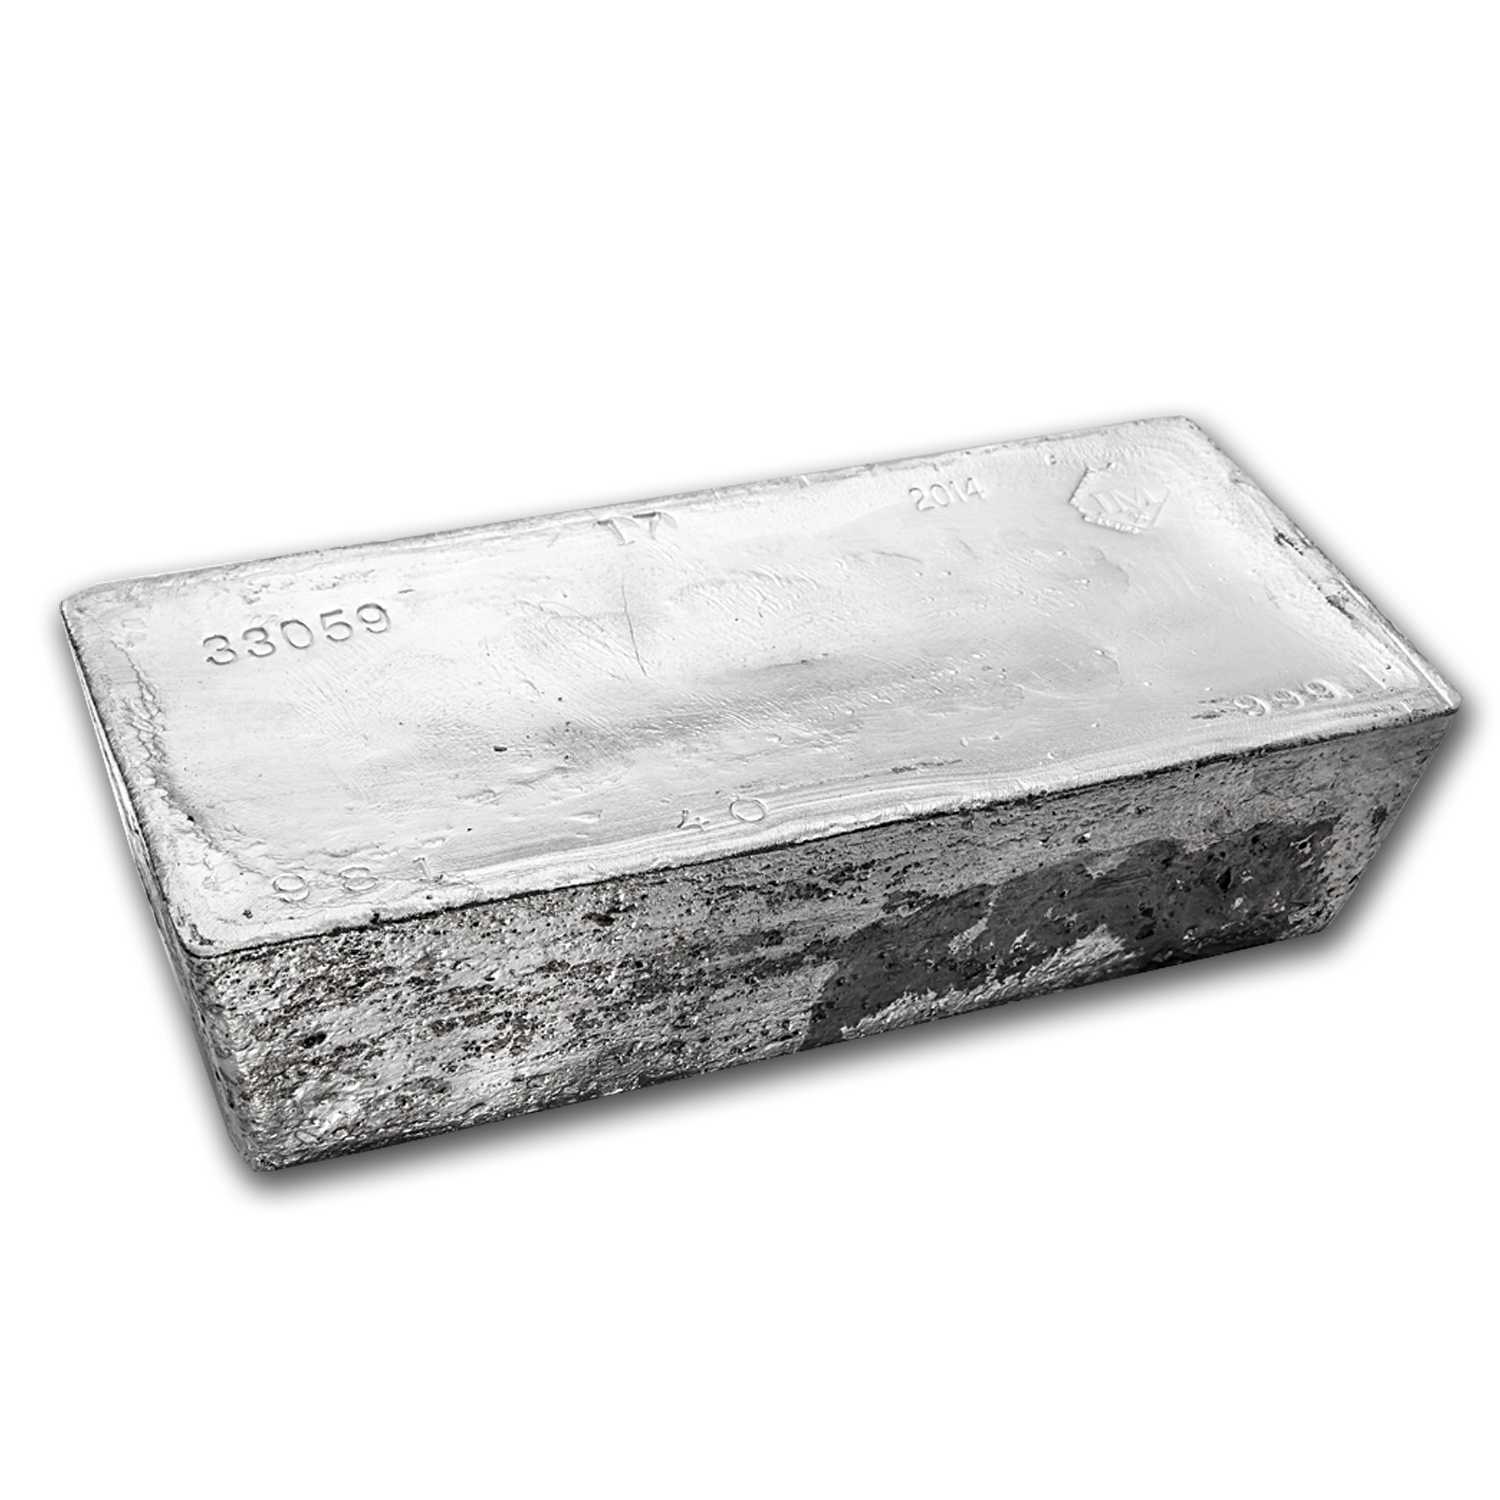 905.80 oz Silver Bar - Johnson Matthey